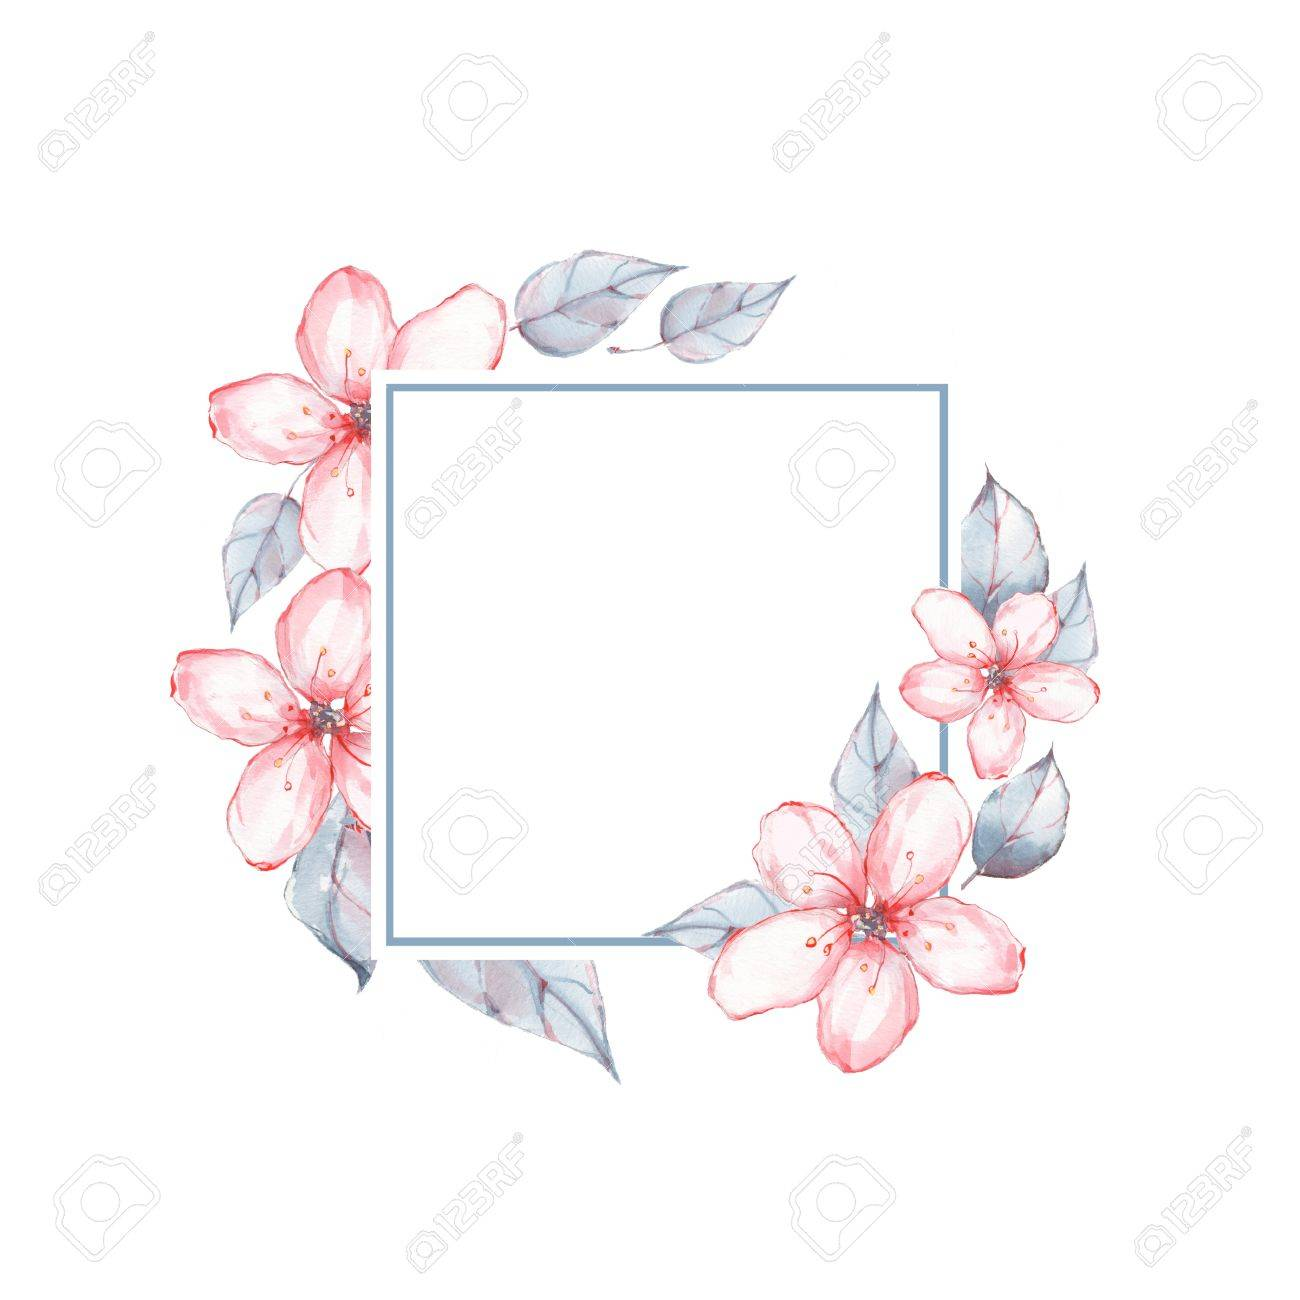 Watercolor Floral Frame Background With Delicate Stock